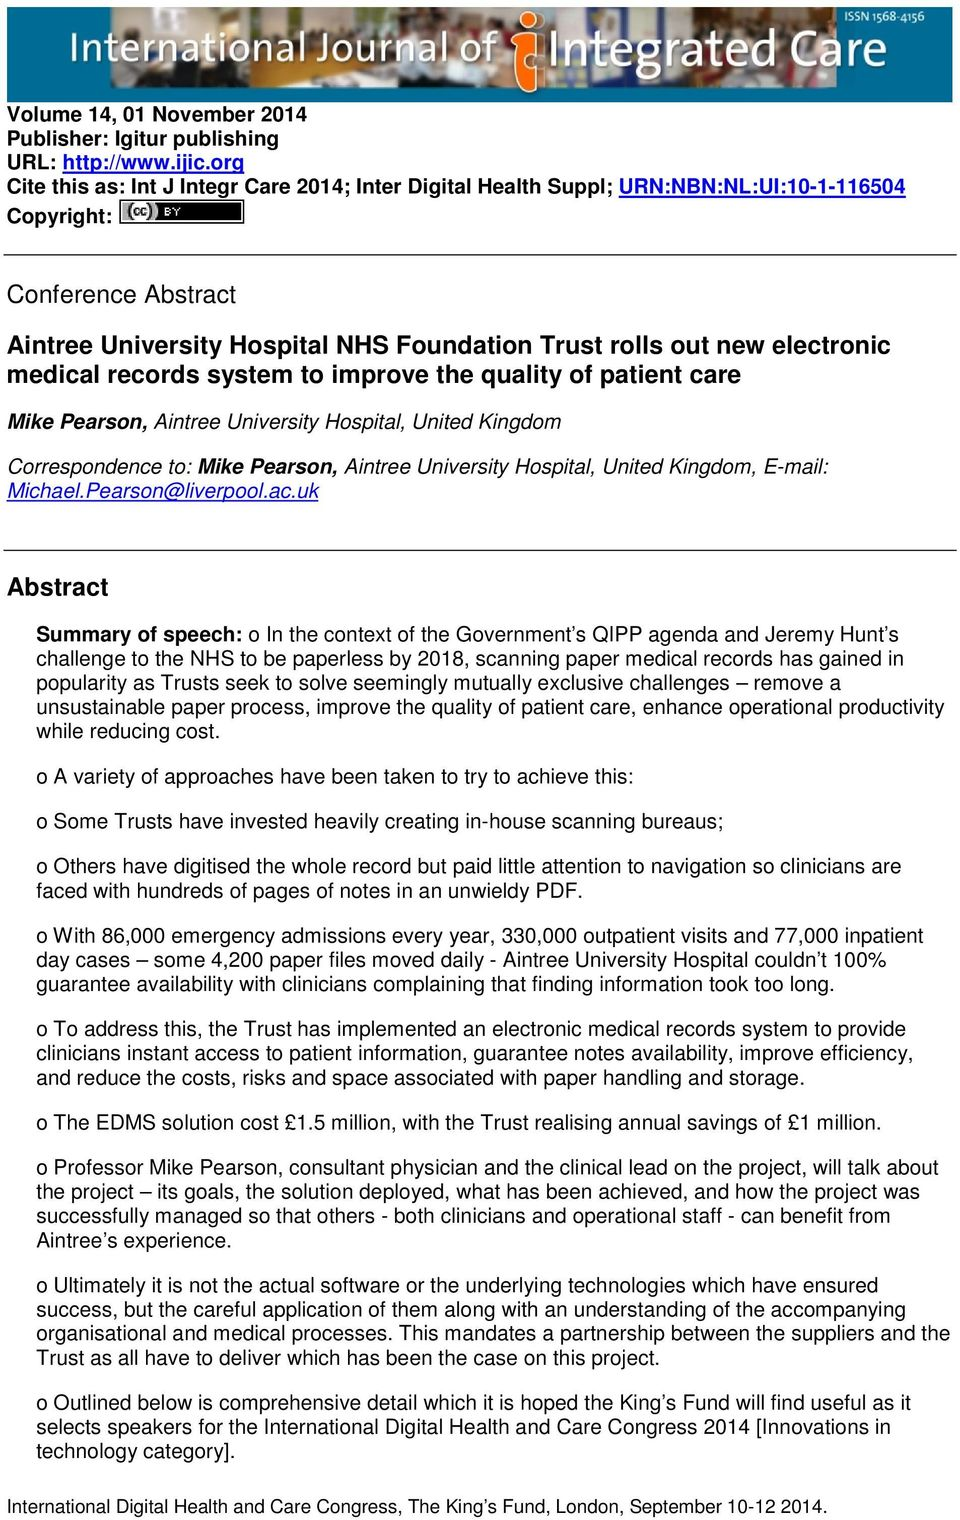 Aintree University Hospital NHS Foundation Trust rolls out new